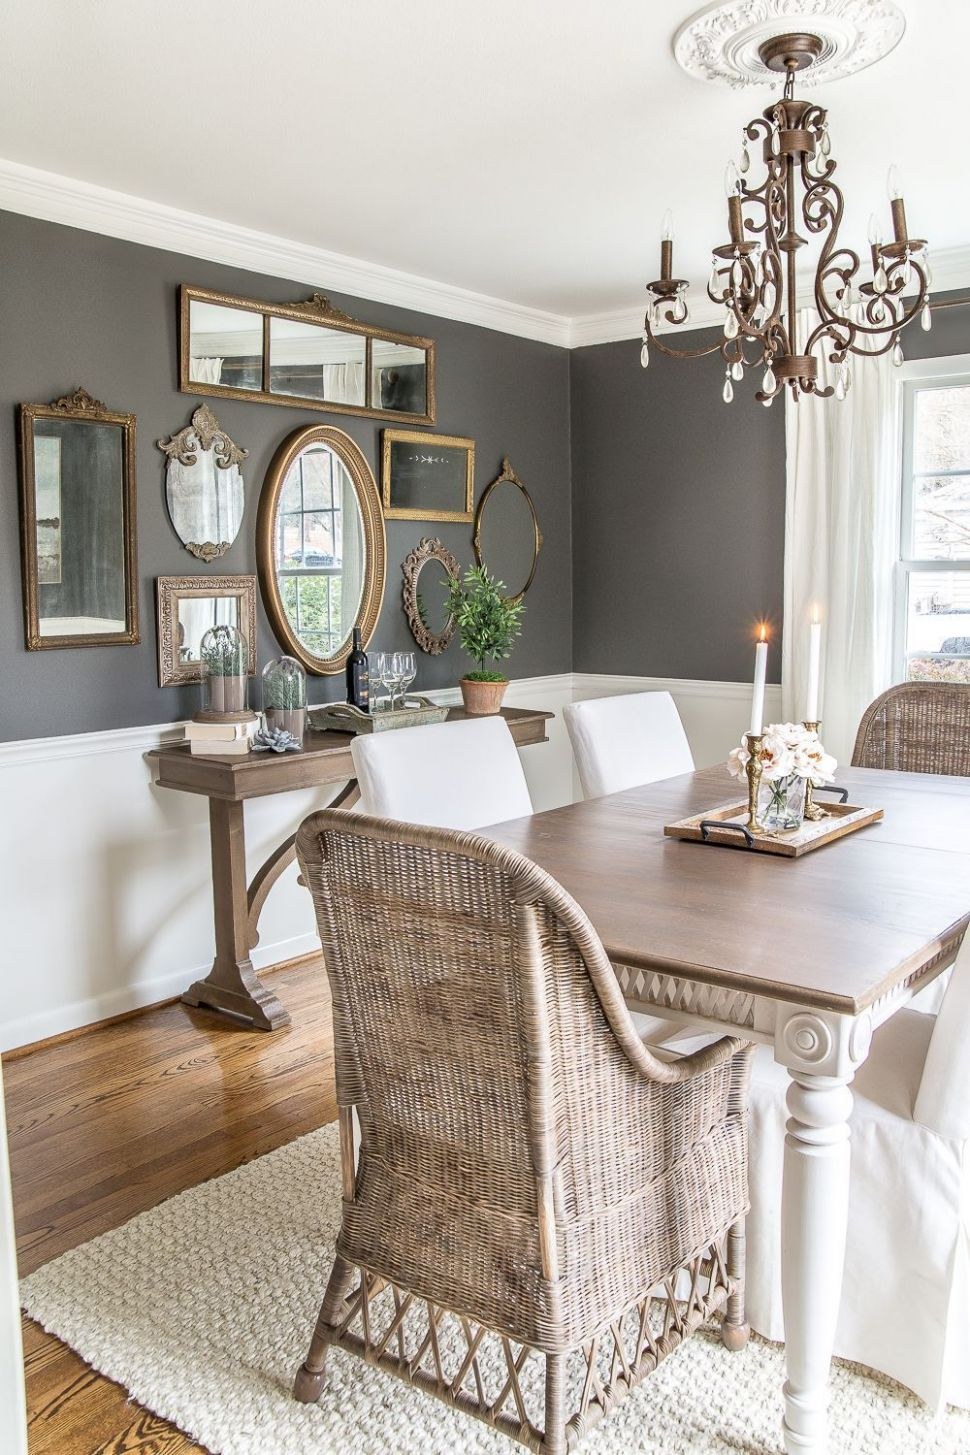 11 Cool Farmhouse Dining Room Decor Ideas | Eclectic dining room ..